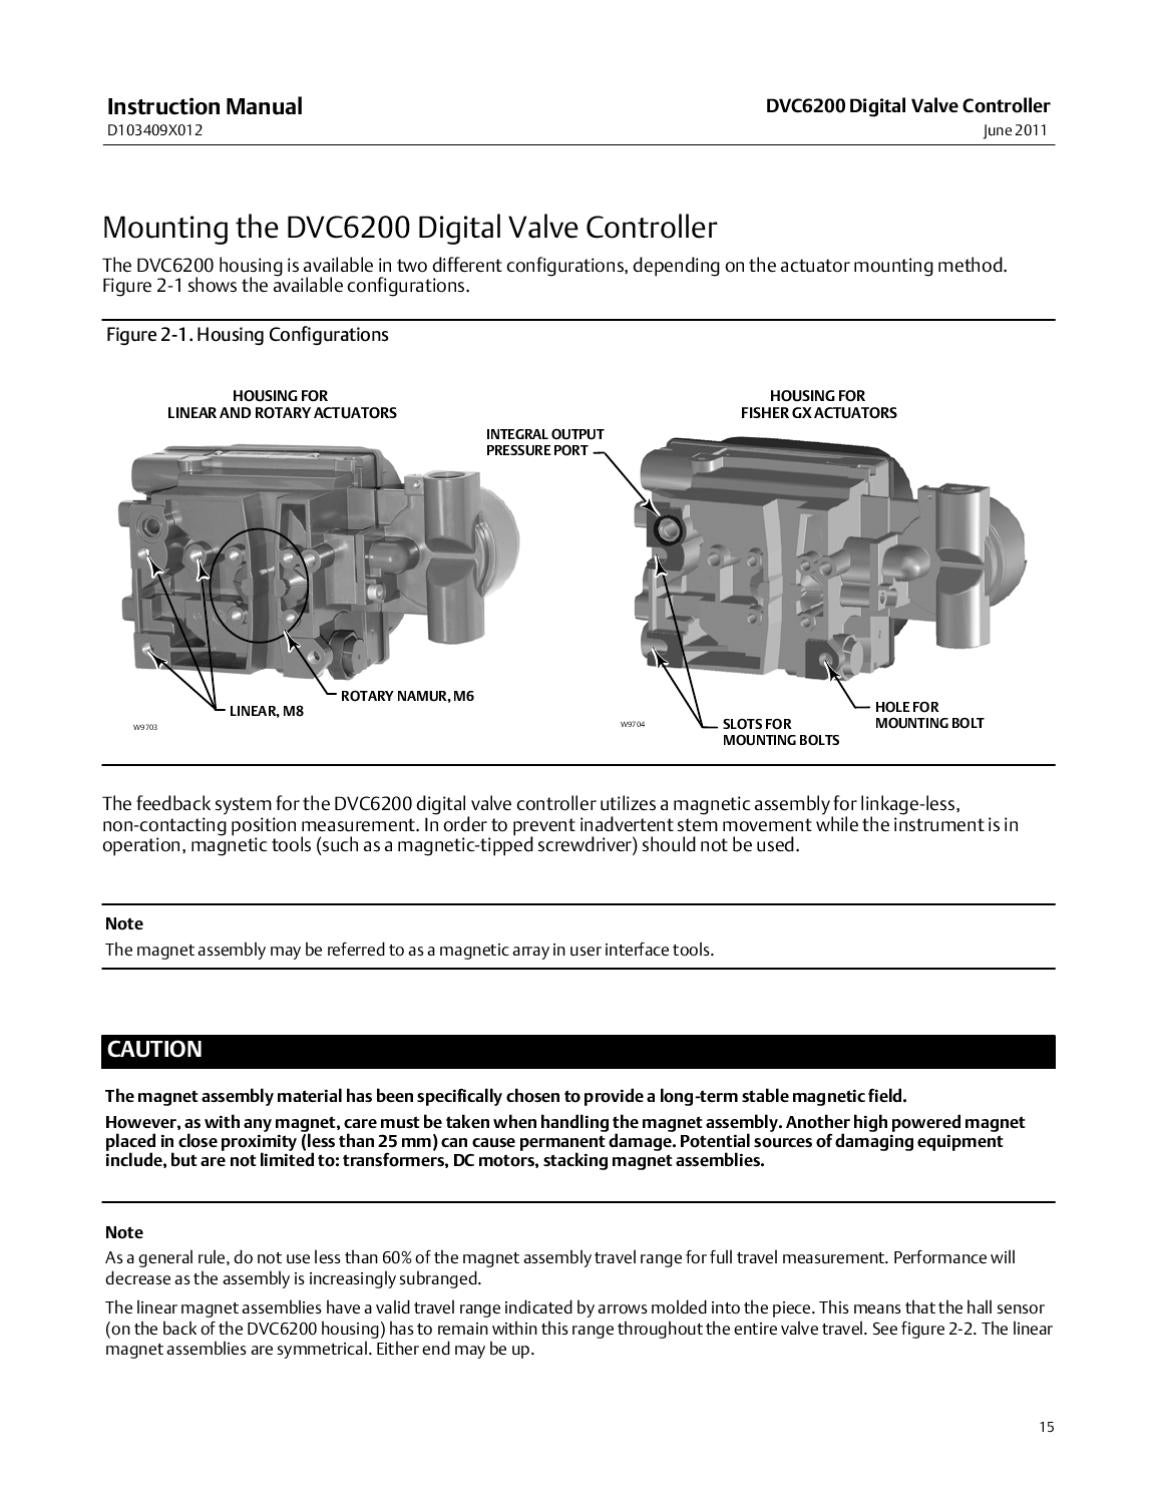 Fisher Dvc6200 Wiring Diagram - Somurich com